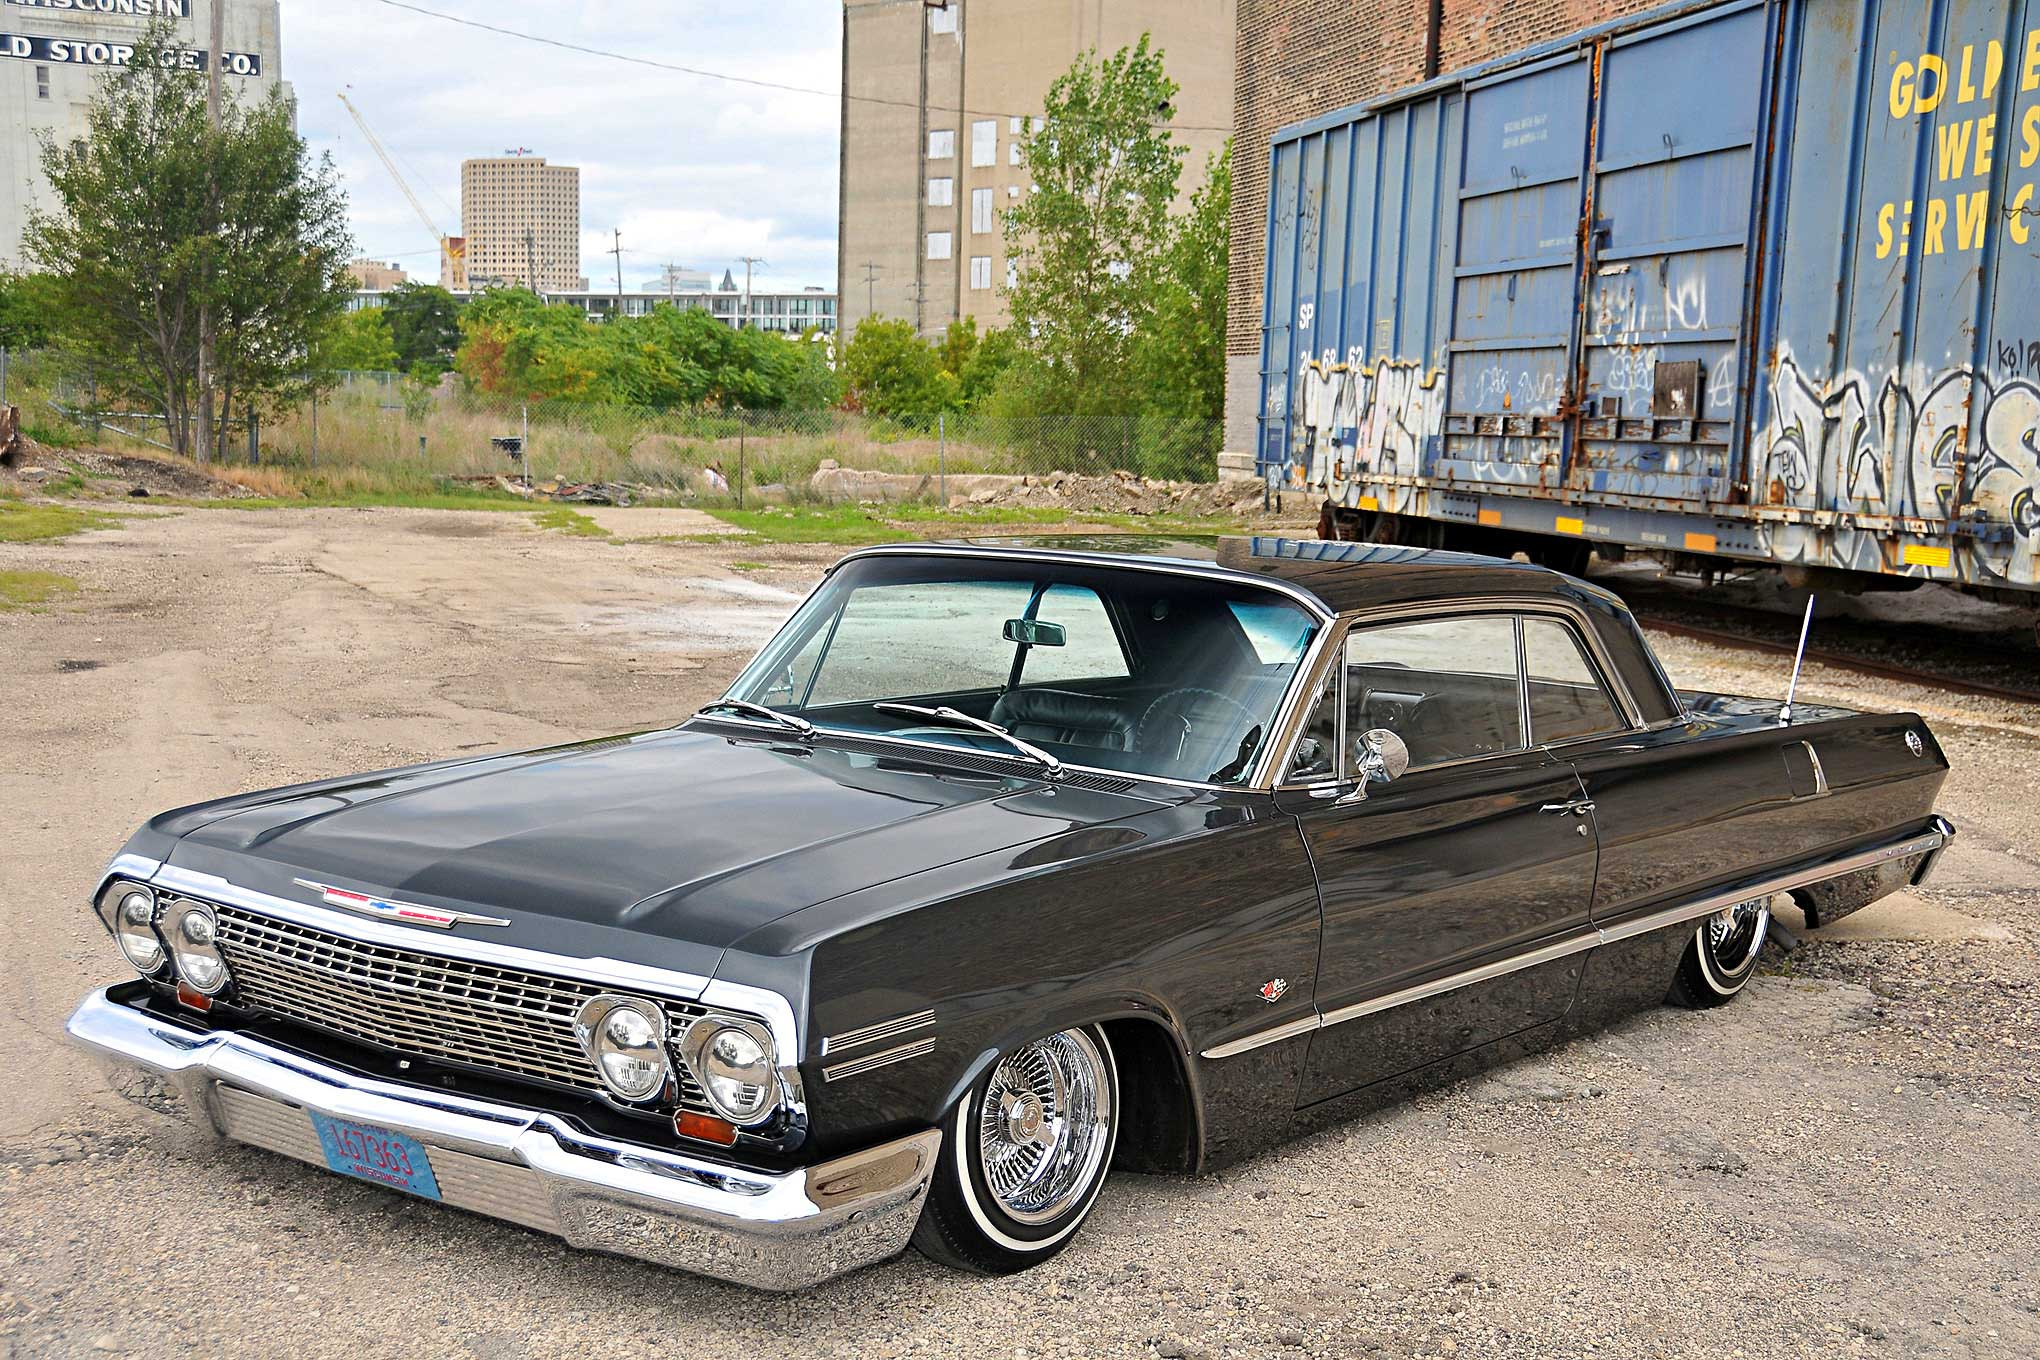 Old Chevy Cars >> 1963 Chevrolet Impala SS Driver Side Front View - Lowrider